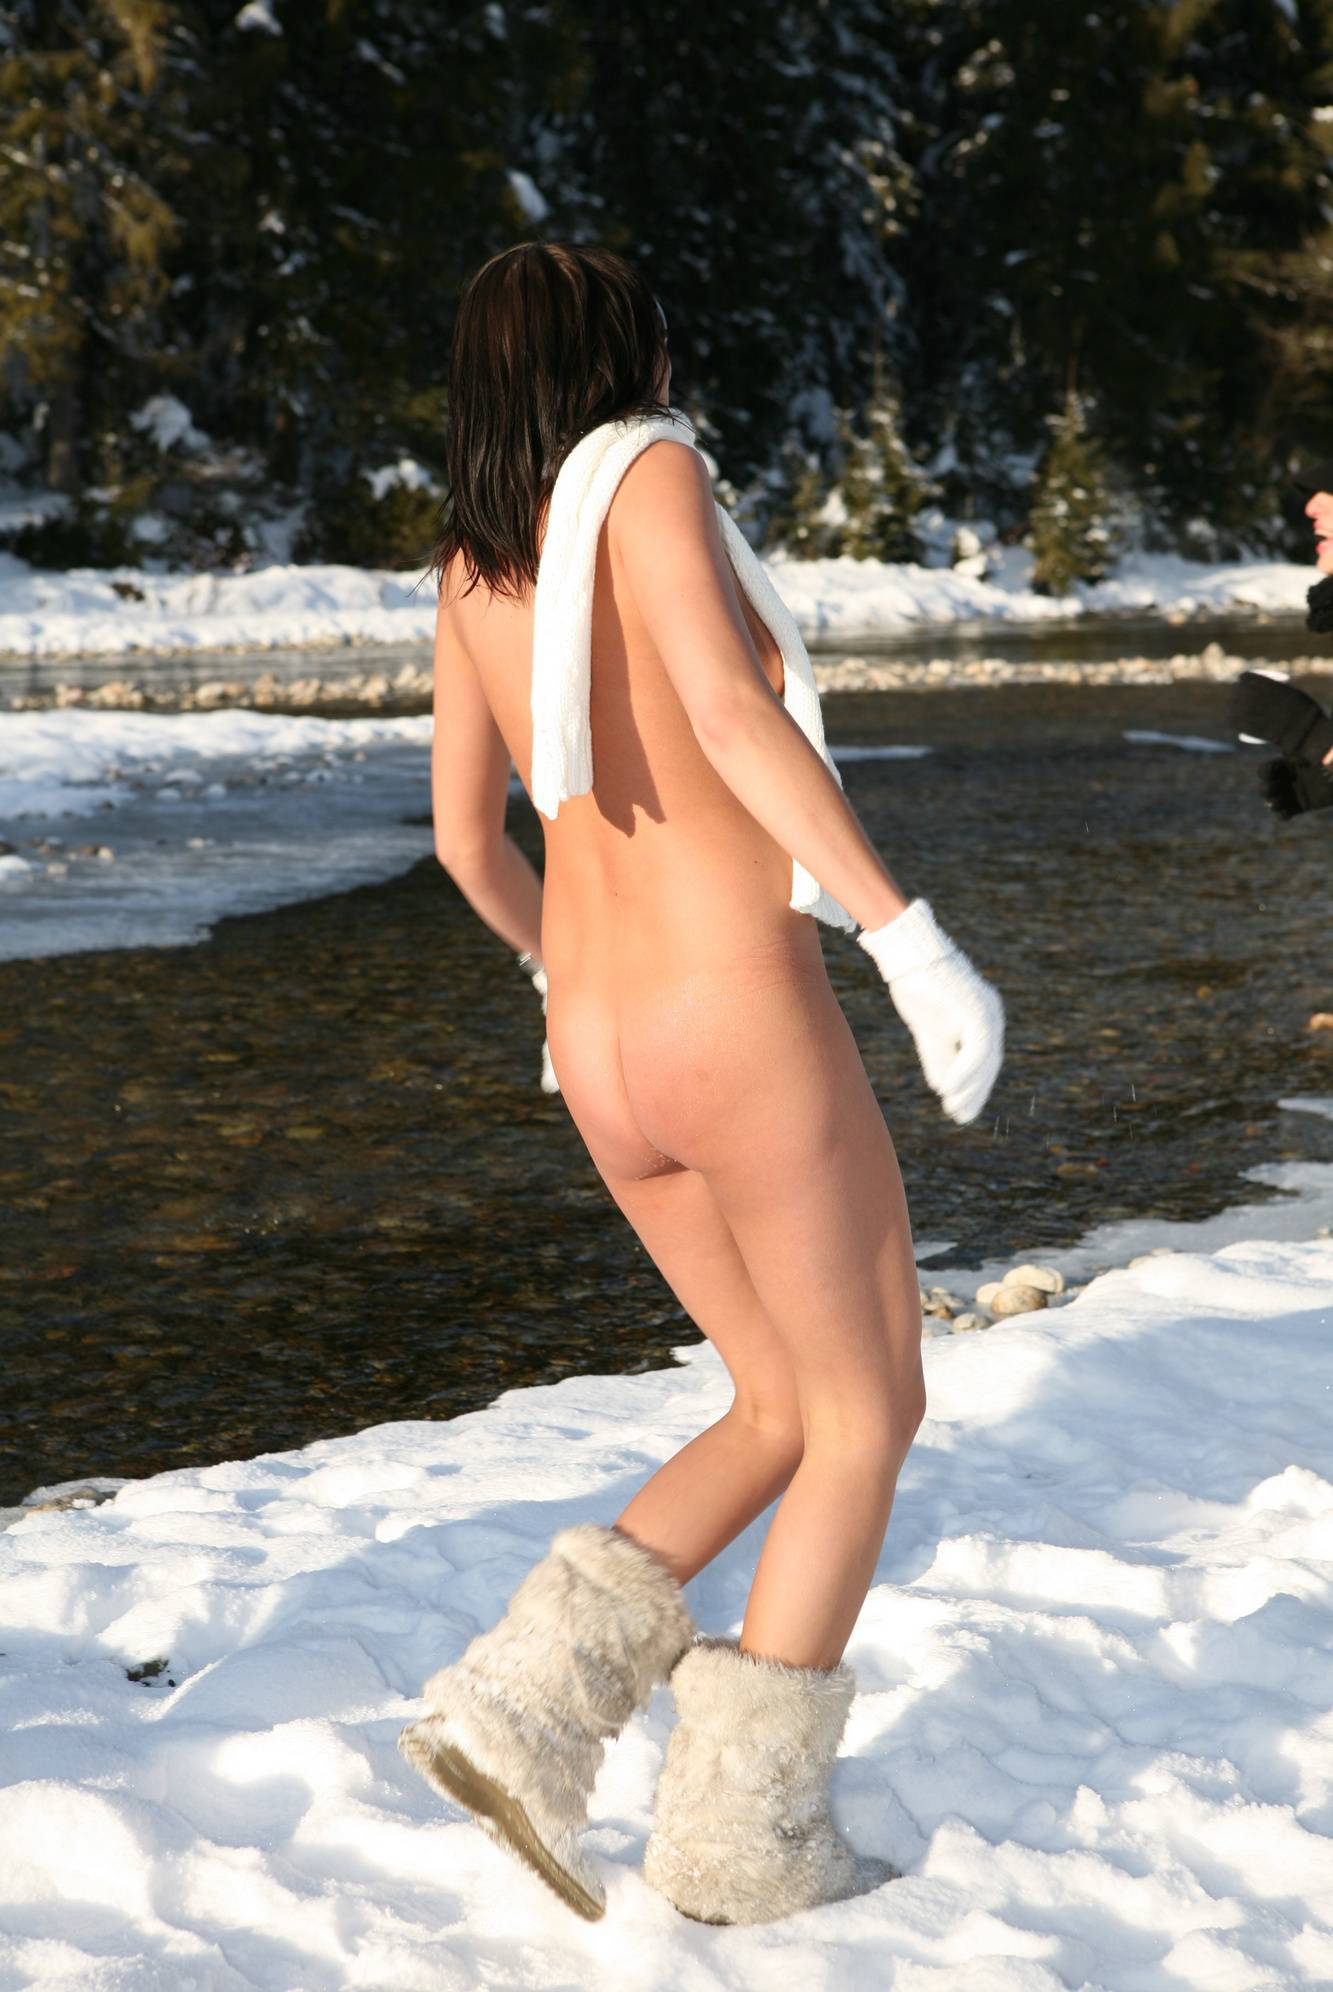 Nudist Gallery Snow Day Girl Snow Hike - 1